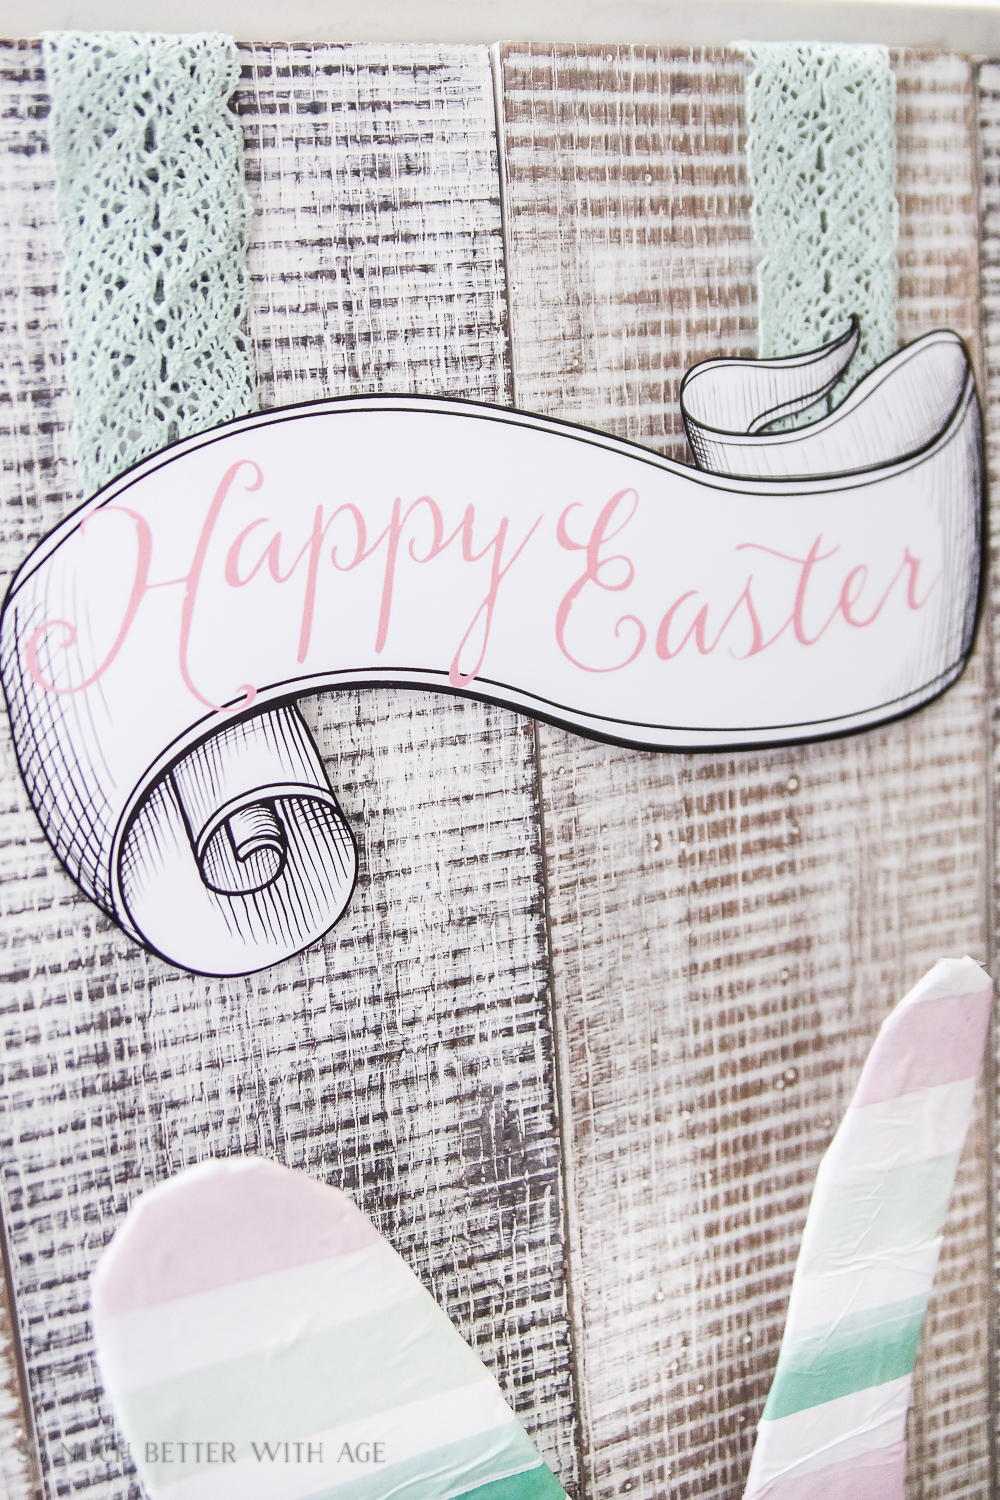 photograph about Happy Easter Sign Printable named Satisfied Easter Signal - Absolutely free Printable Consequently Substantially Improved With Age